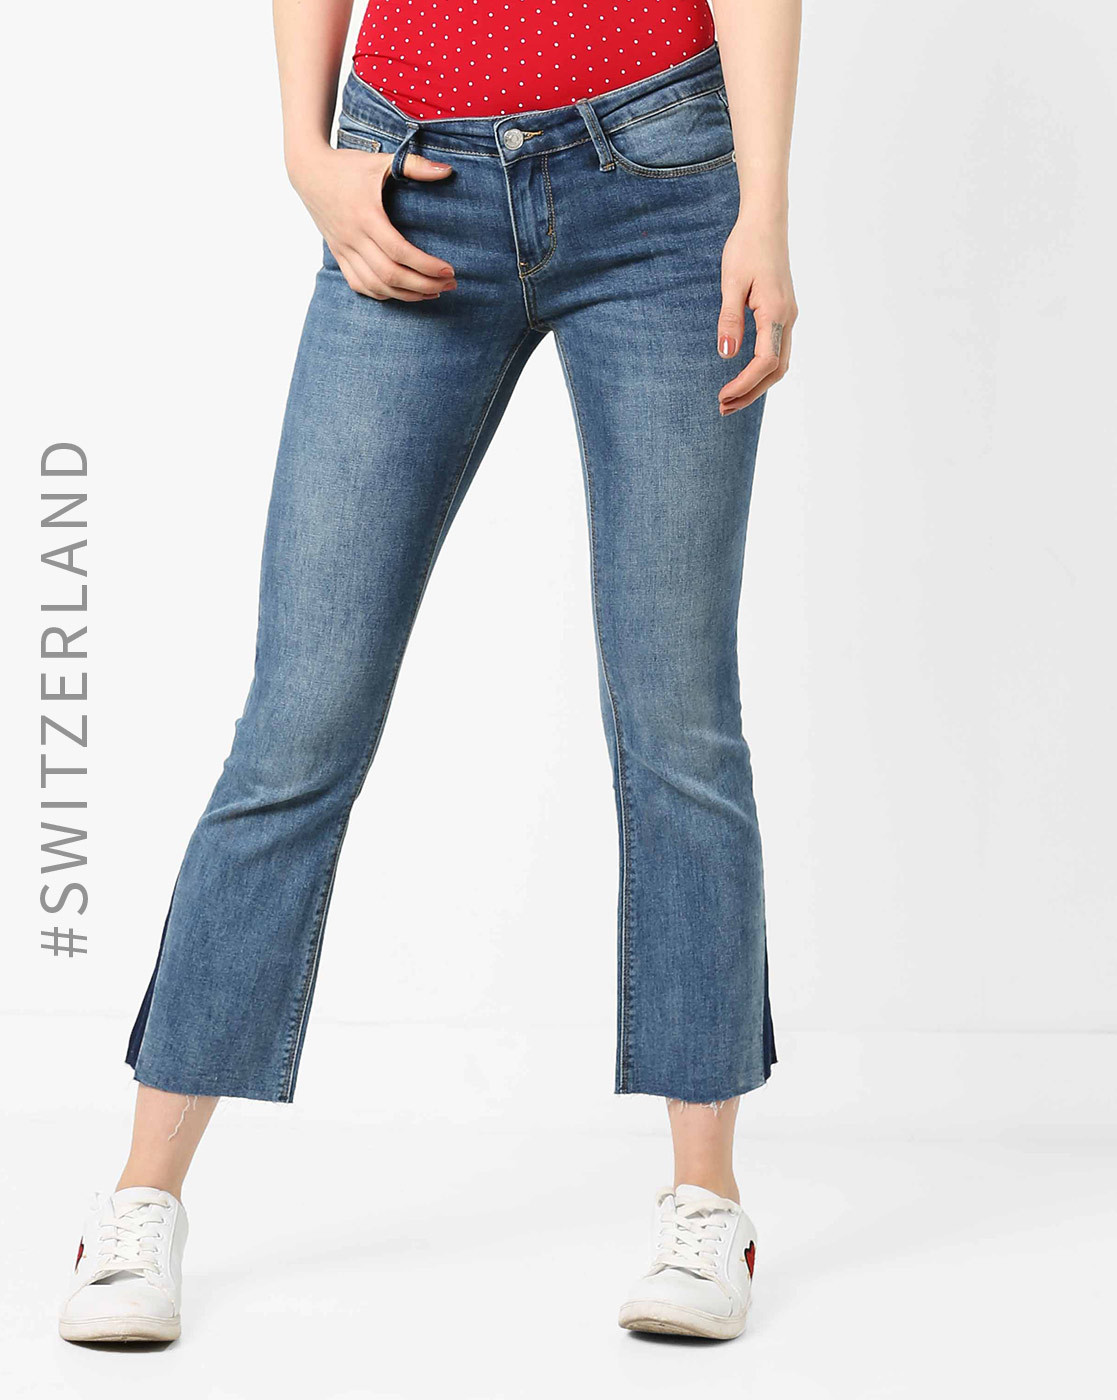 1 flared jeans